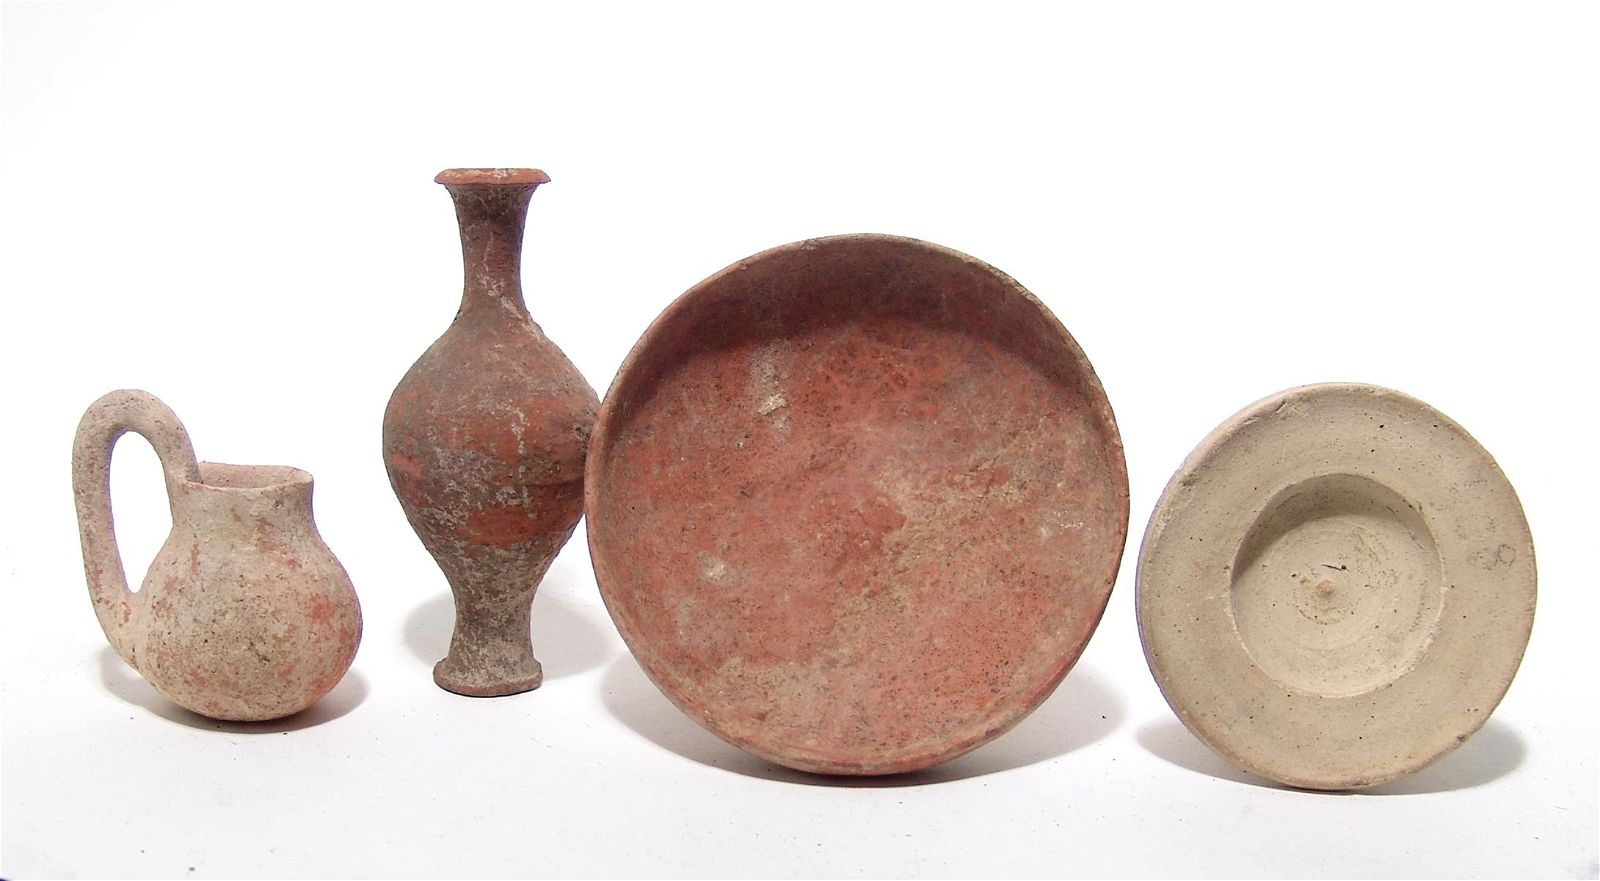 A group of 4 Holy Land pottery objects